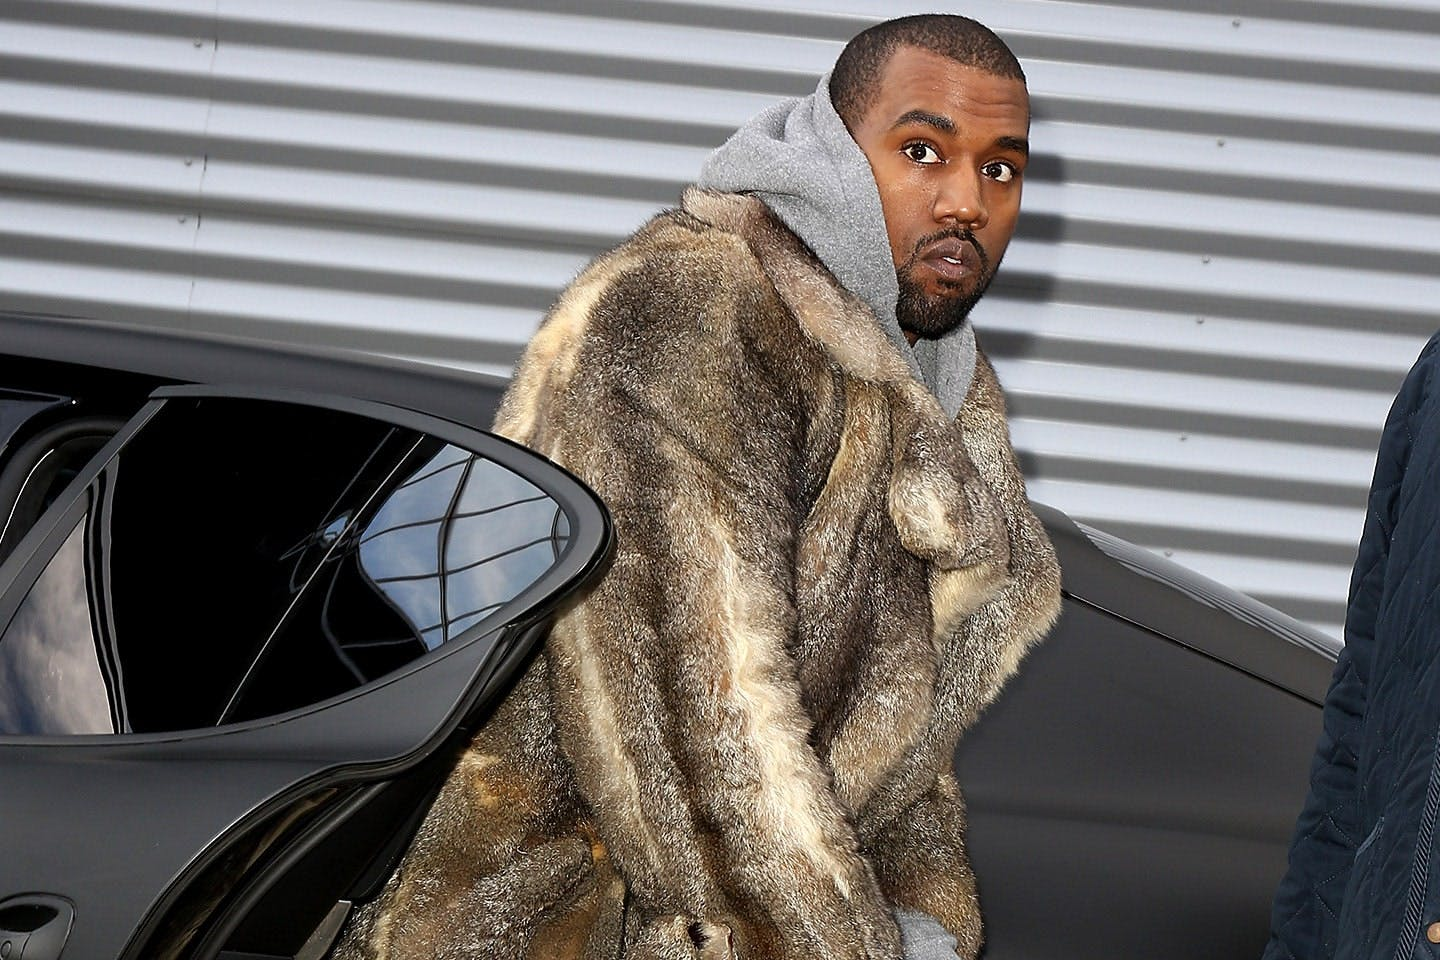 KANYE WEST'S YEEZY GOT FEDERAL PANDEMIC LOAN OF OVER $2 MILLION